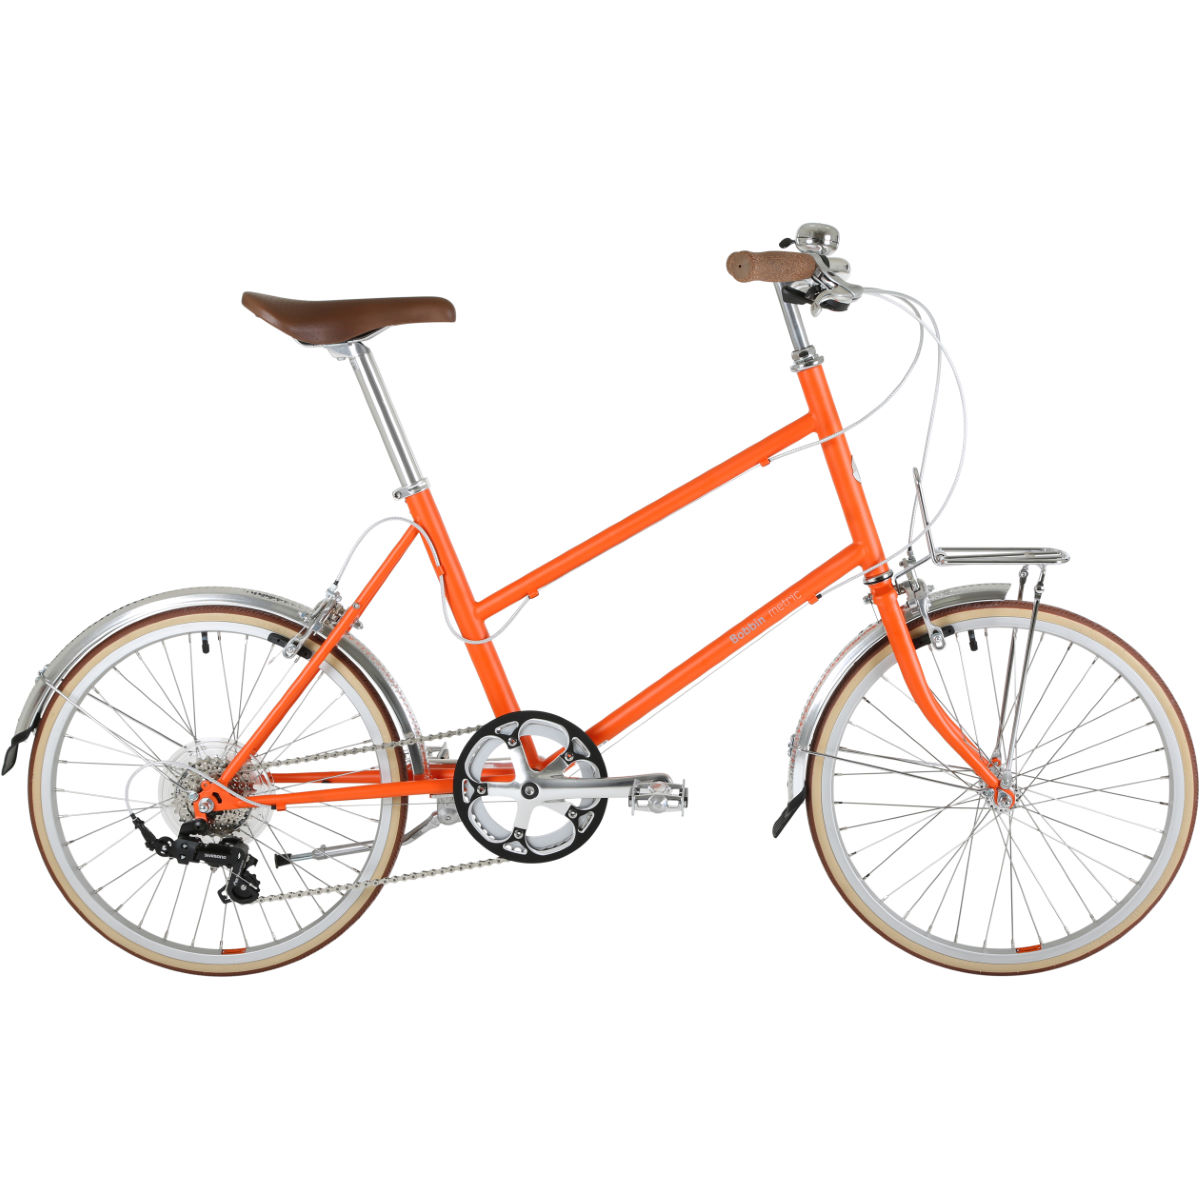 Vélo hybride Bobbin Metric (couleur charbon) - 42cm Orange